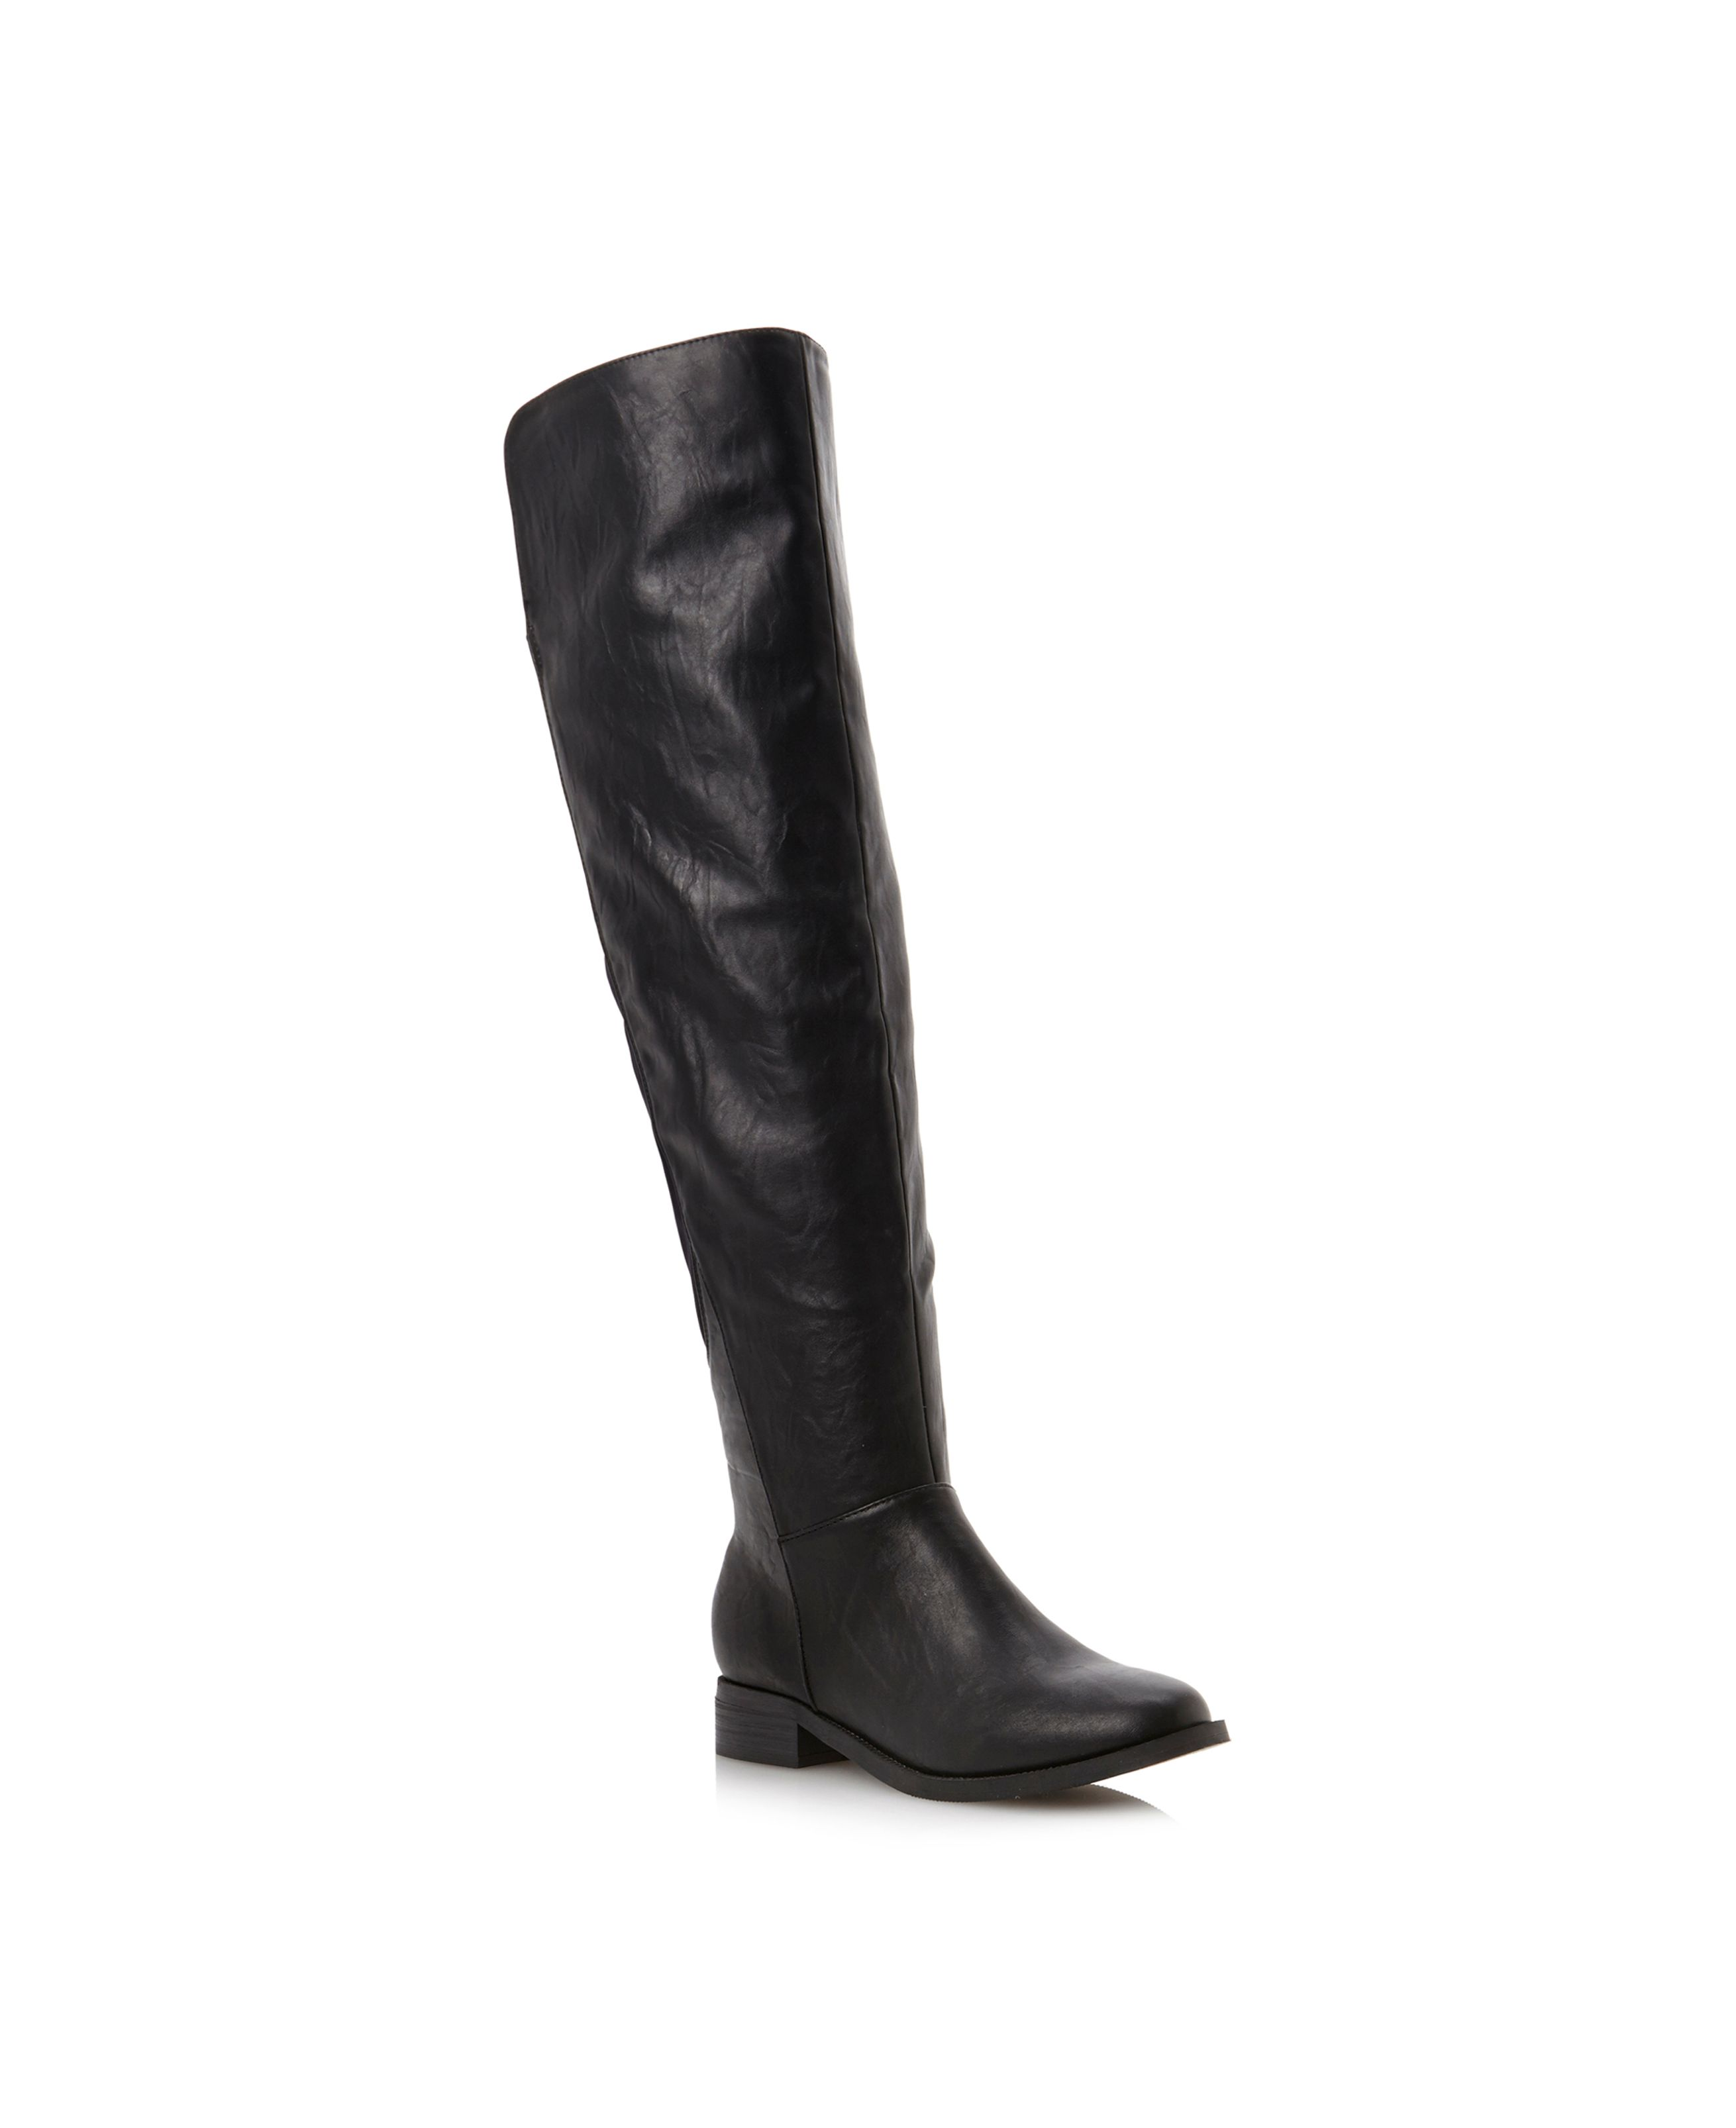 Talia over the knee flat boots